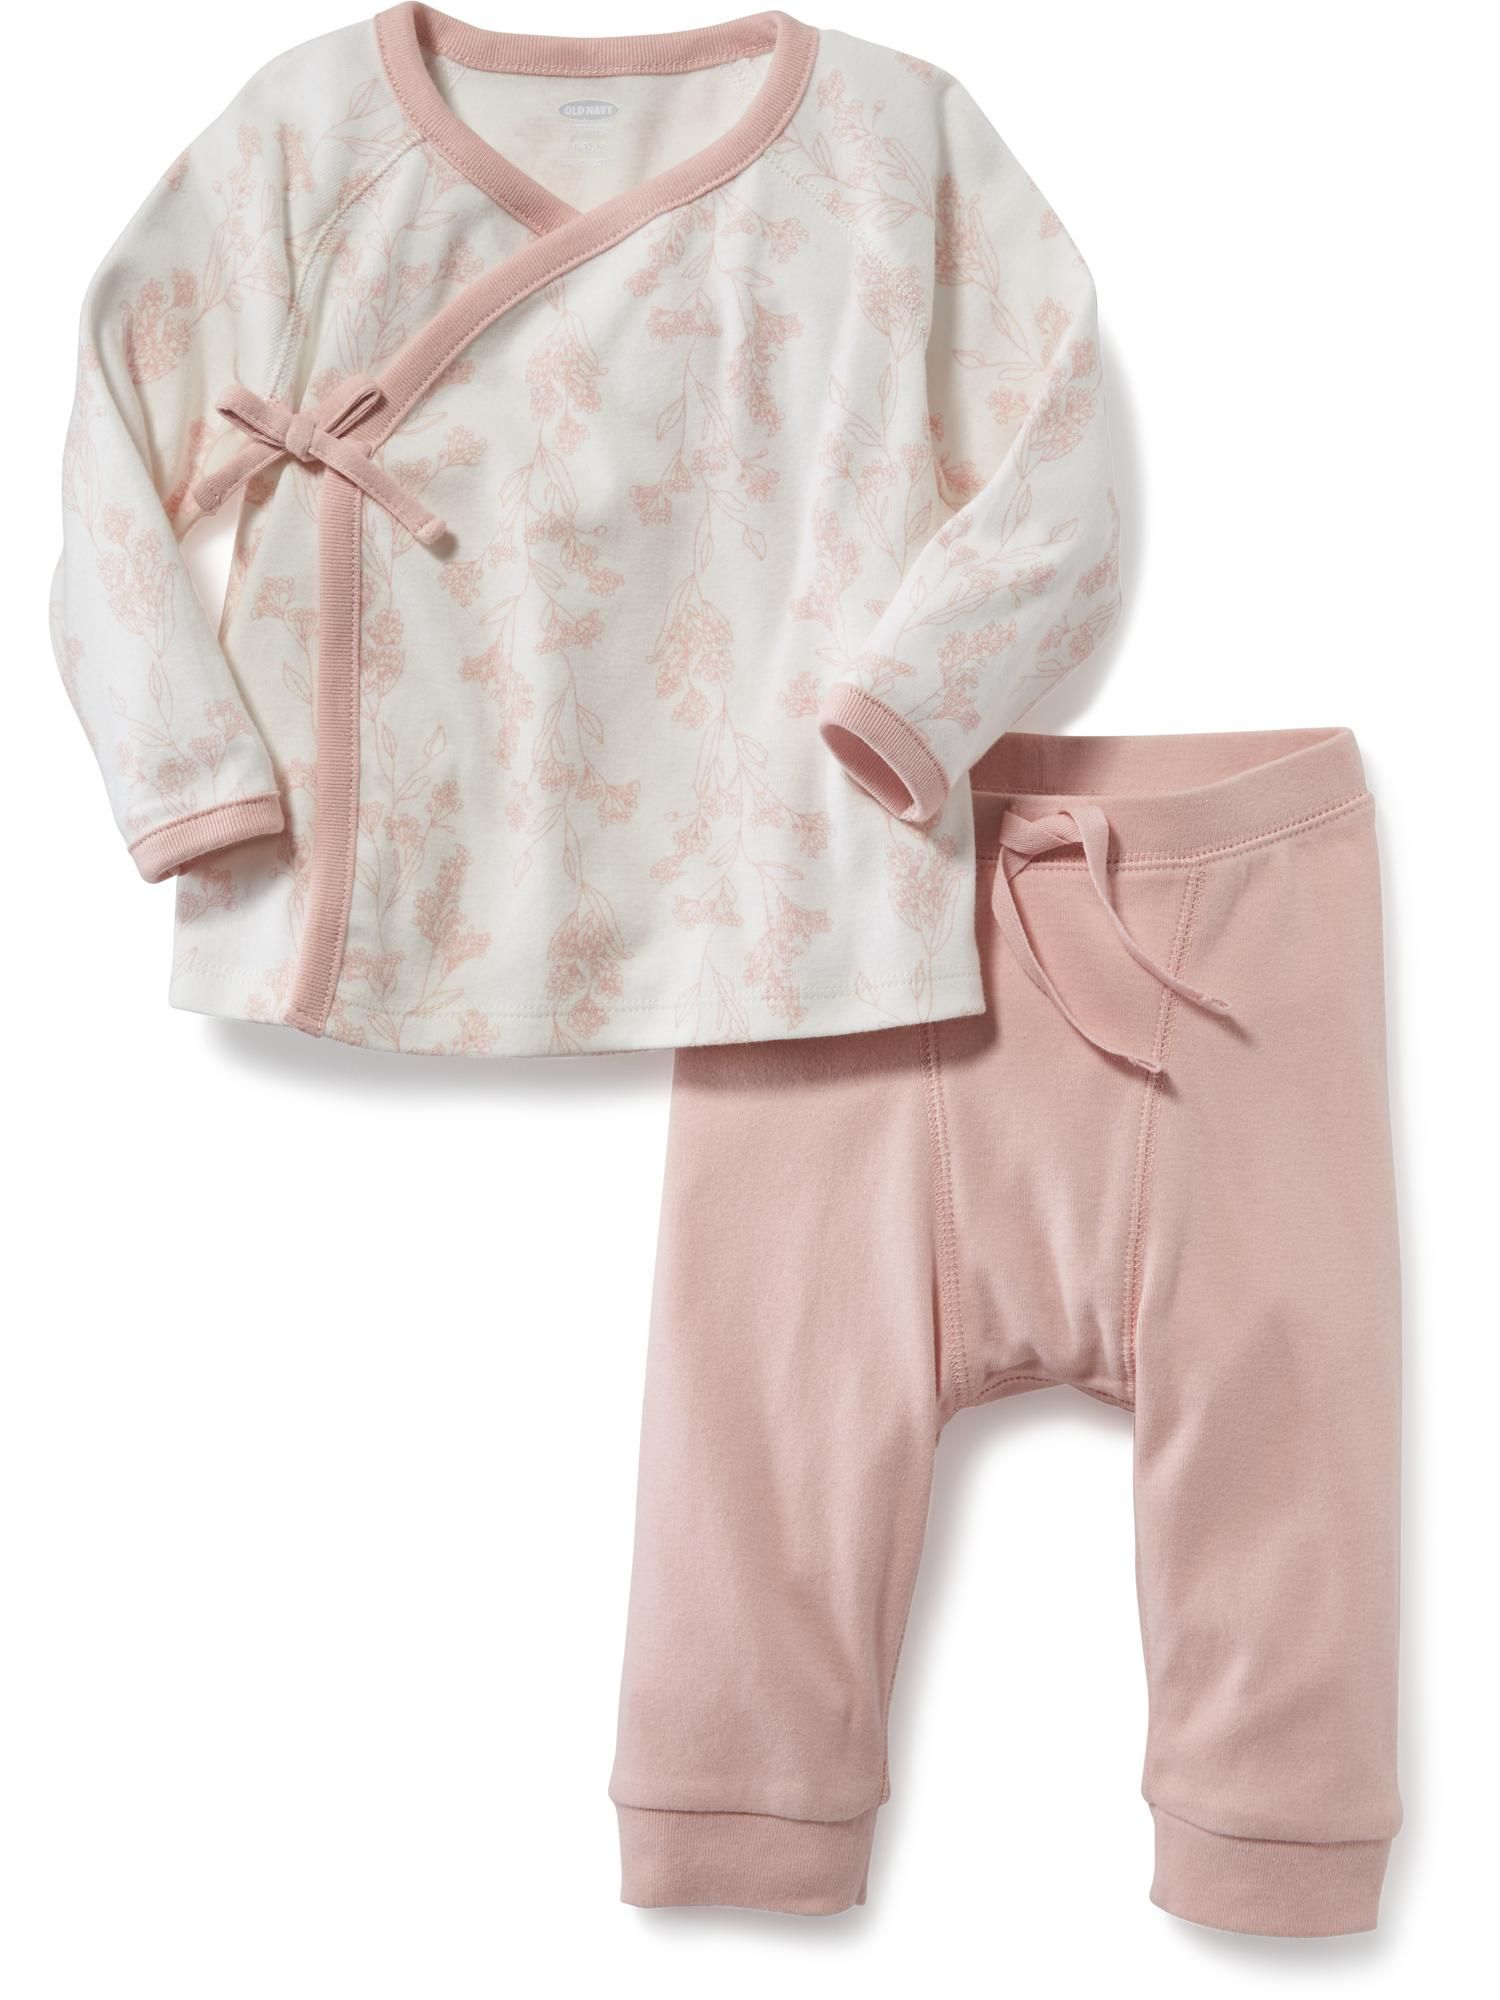 2 Piece Printed Tee and Pants Set for Baby Old Navy